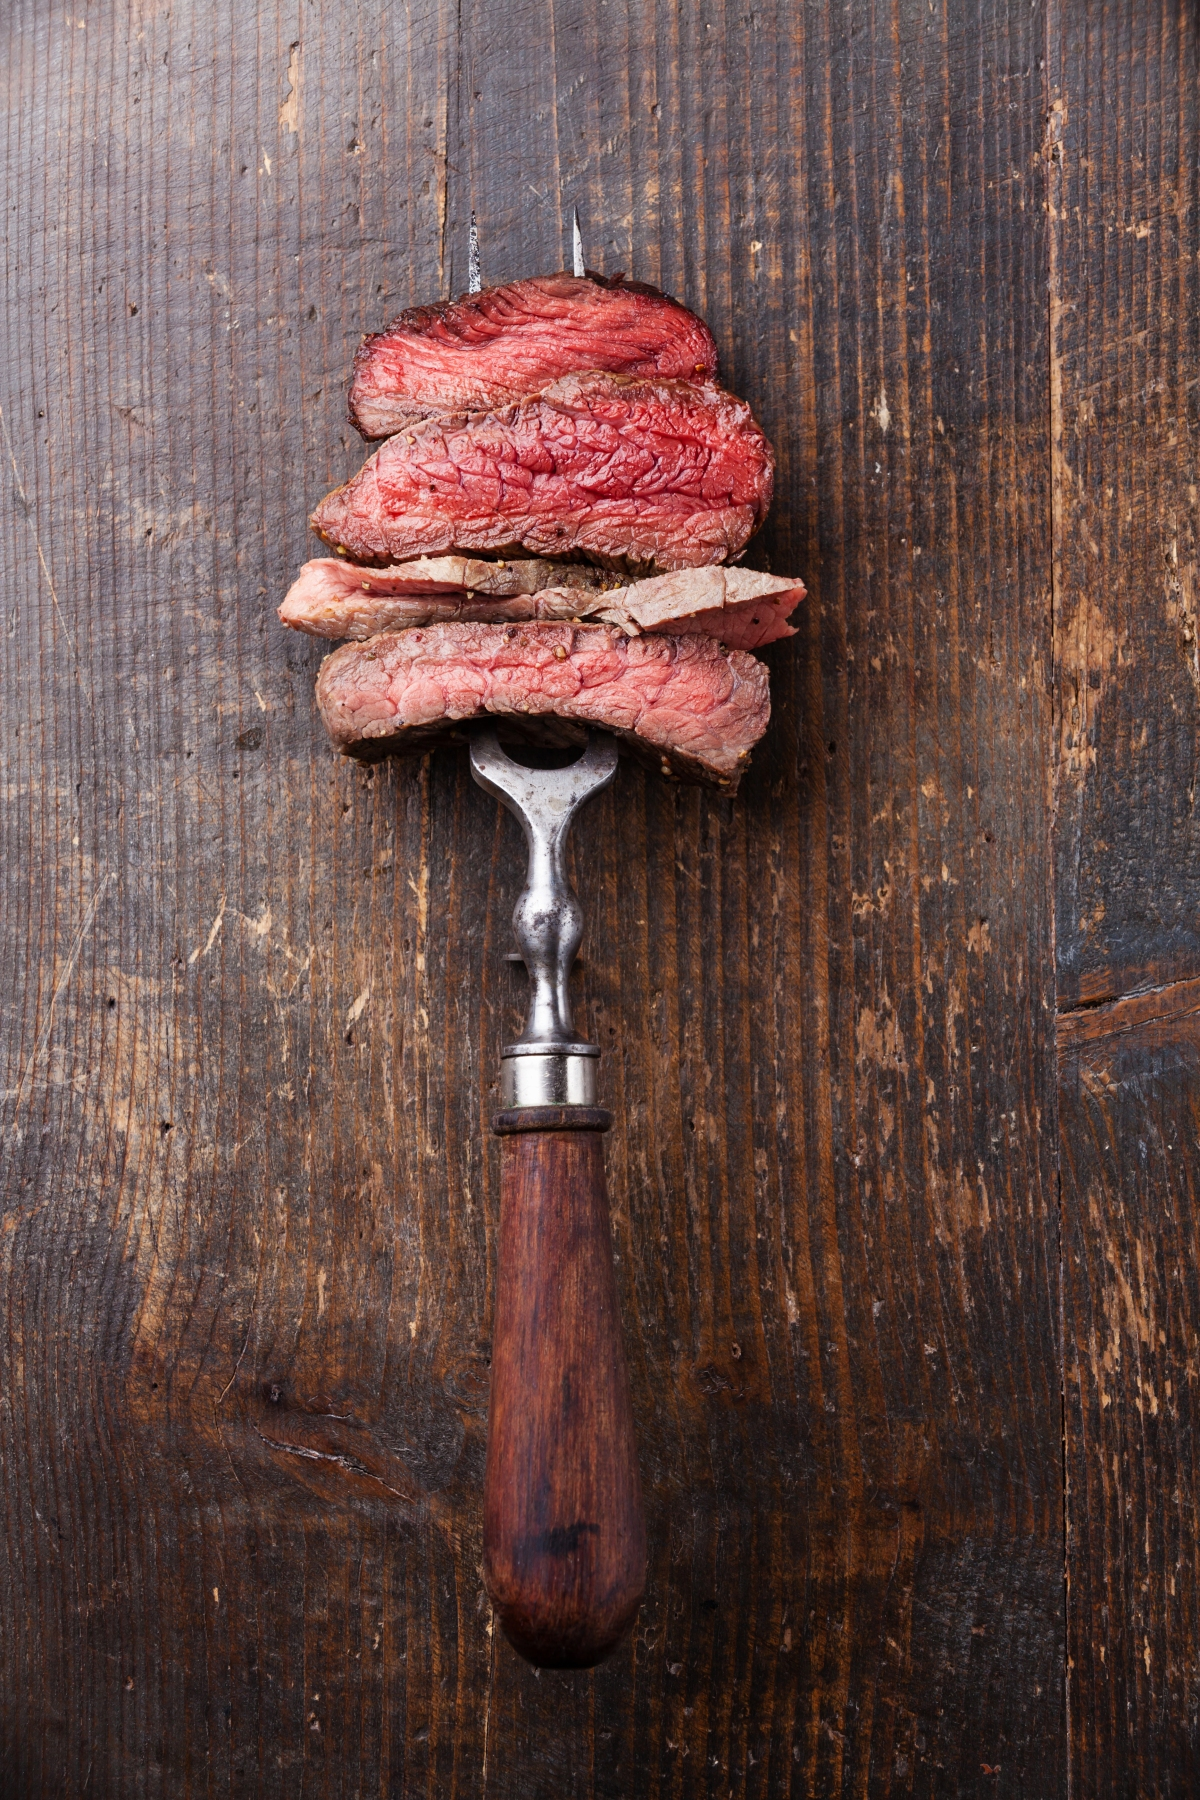 The Best Way to Cook Venison – The 3Abilities